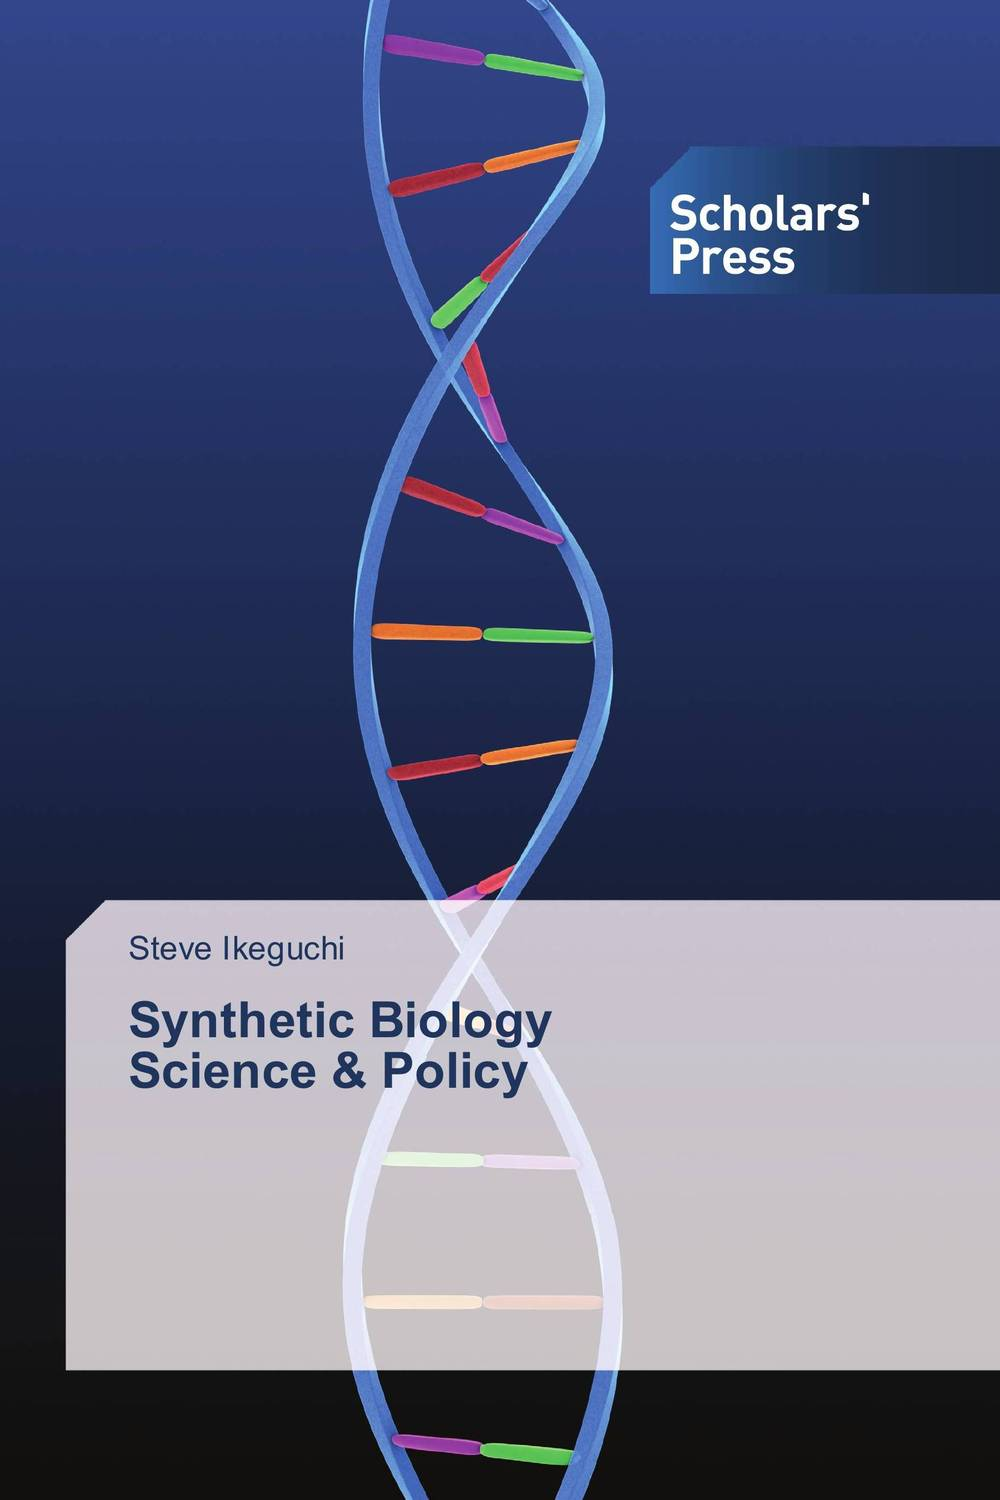 Synthetic Biology Science & Policy the paradigms of synthetic biology